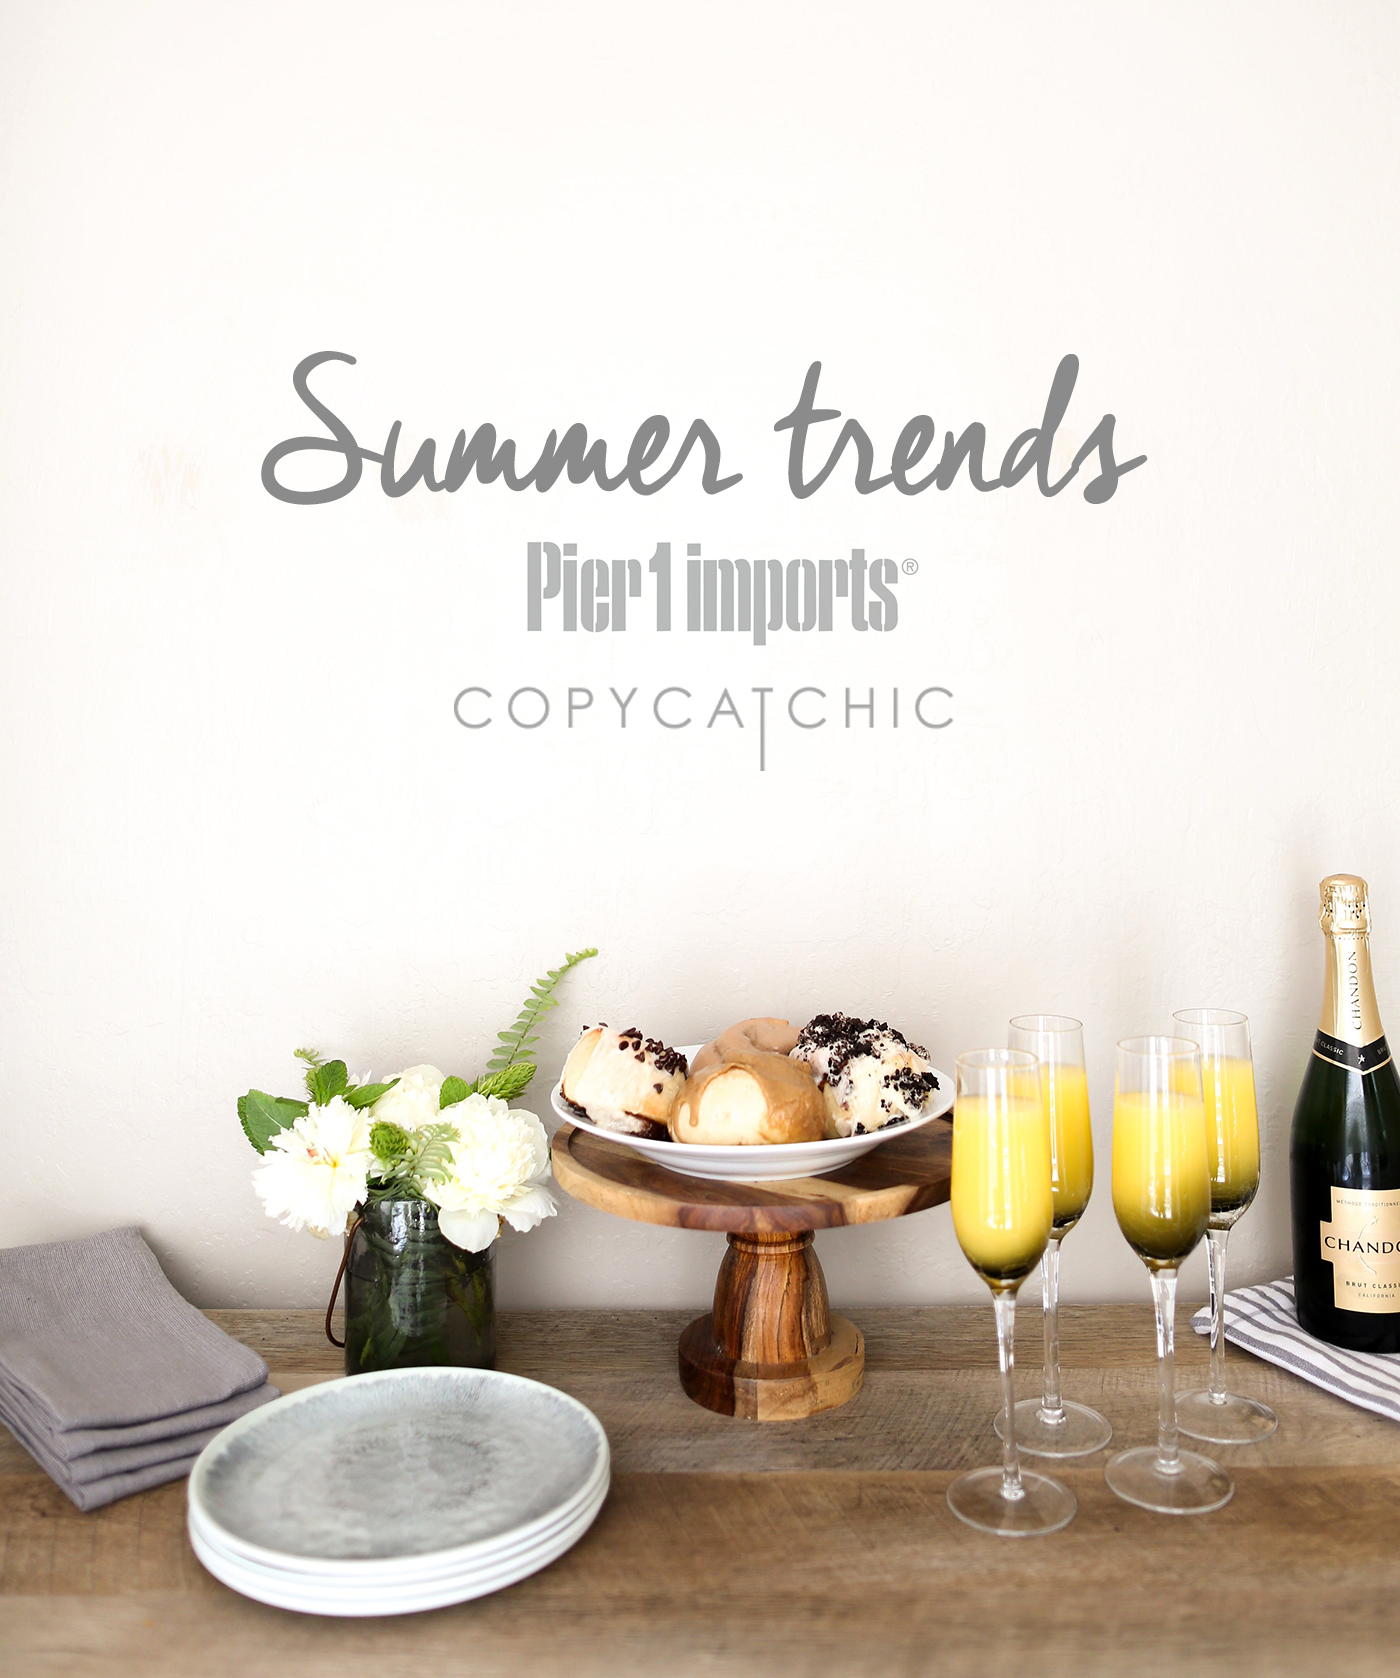 Copy Cat Chic's favorite home decor trends for summer from Pier 1 Imports? Grays, rich wood and warm, creamy neutrals. Light tones with lots of texture.